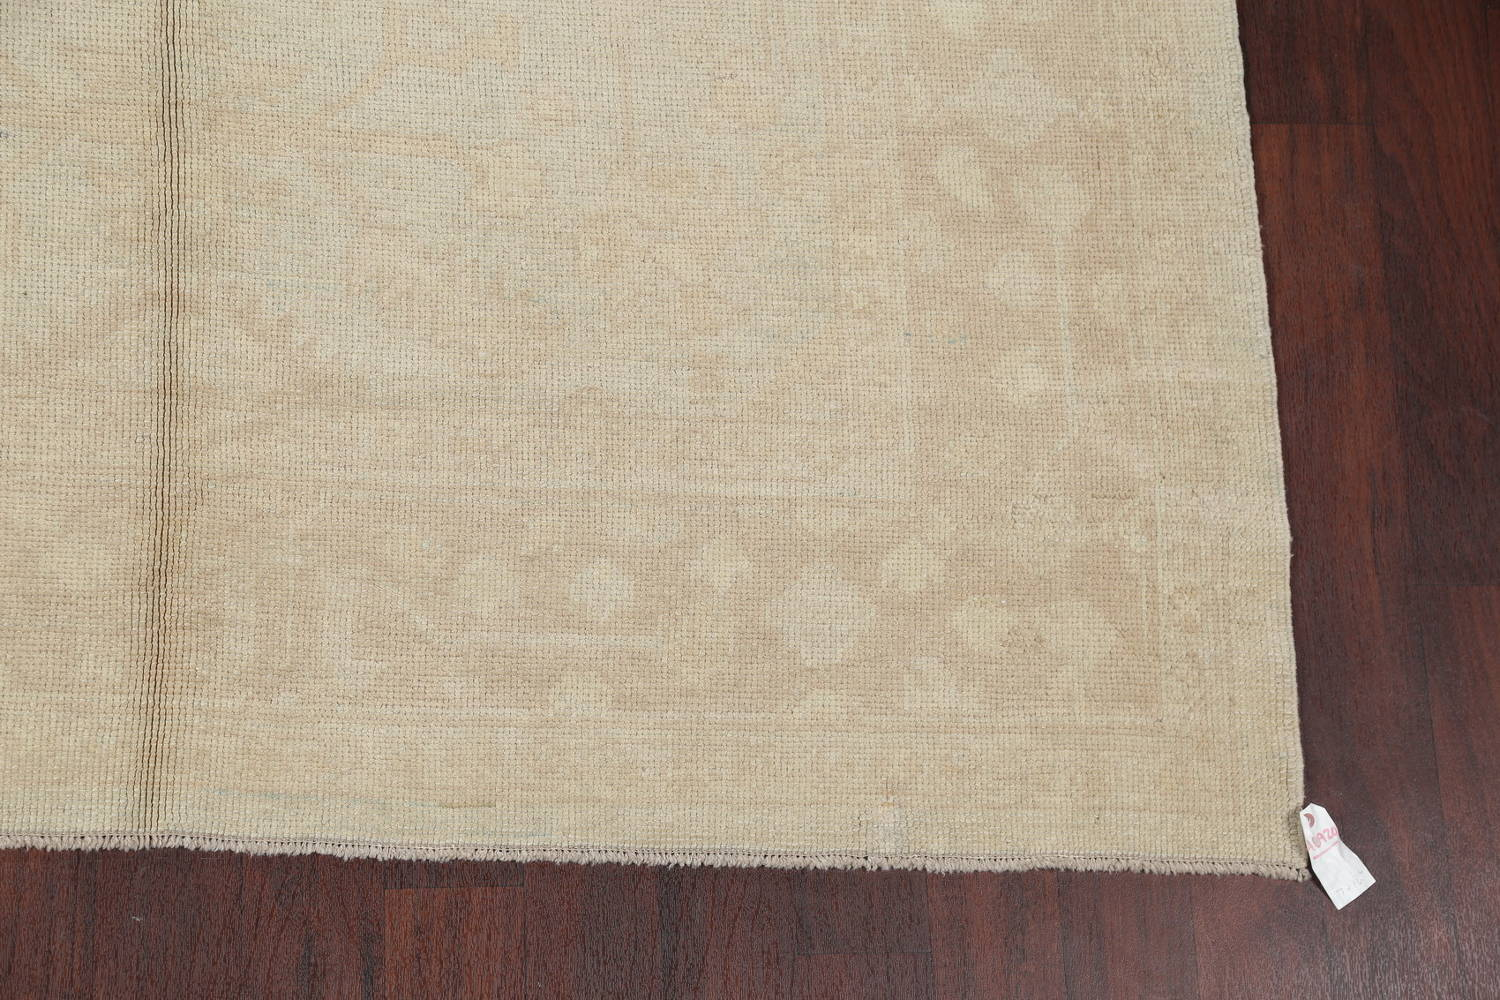 Vegetable Dye Muted Pale Blue Oushak Turkish Hand-Knotted Runner Rug 7x17 image 6